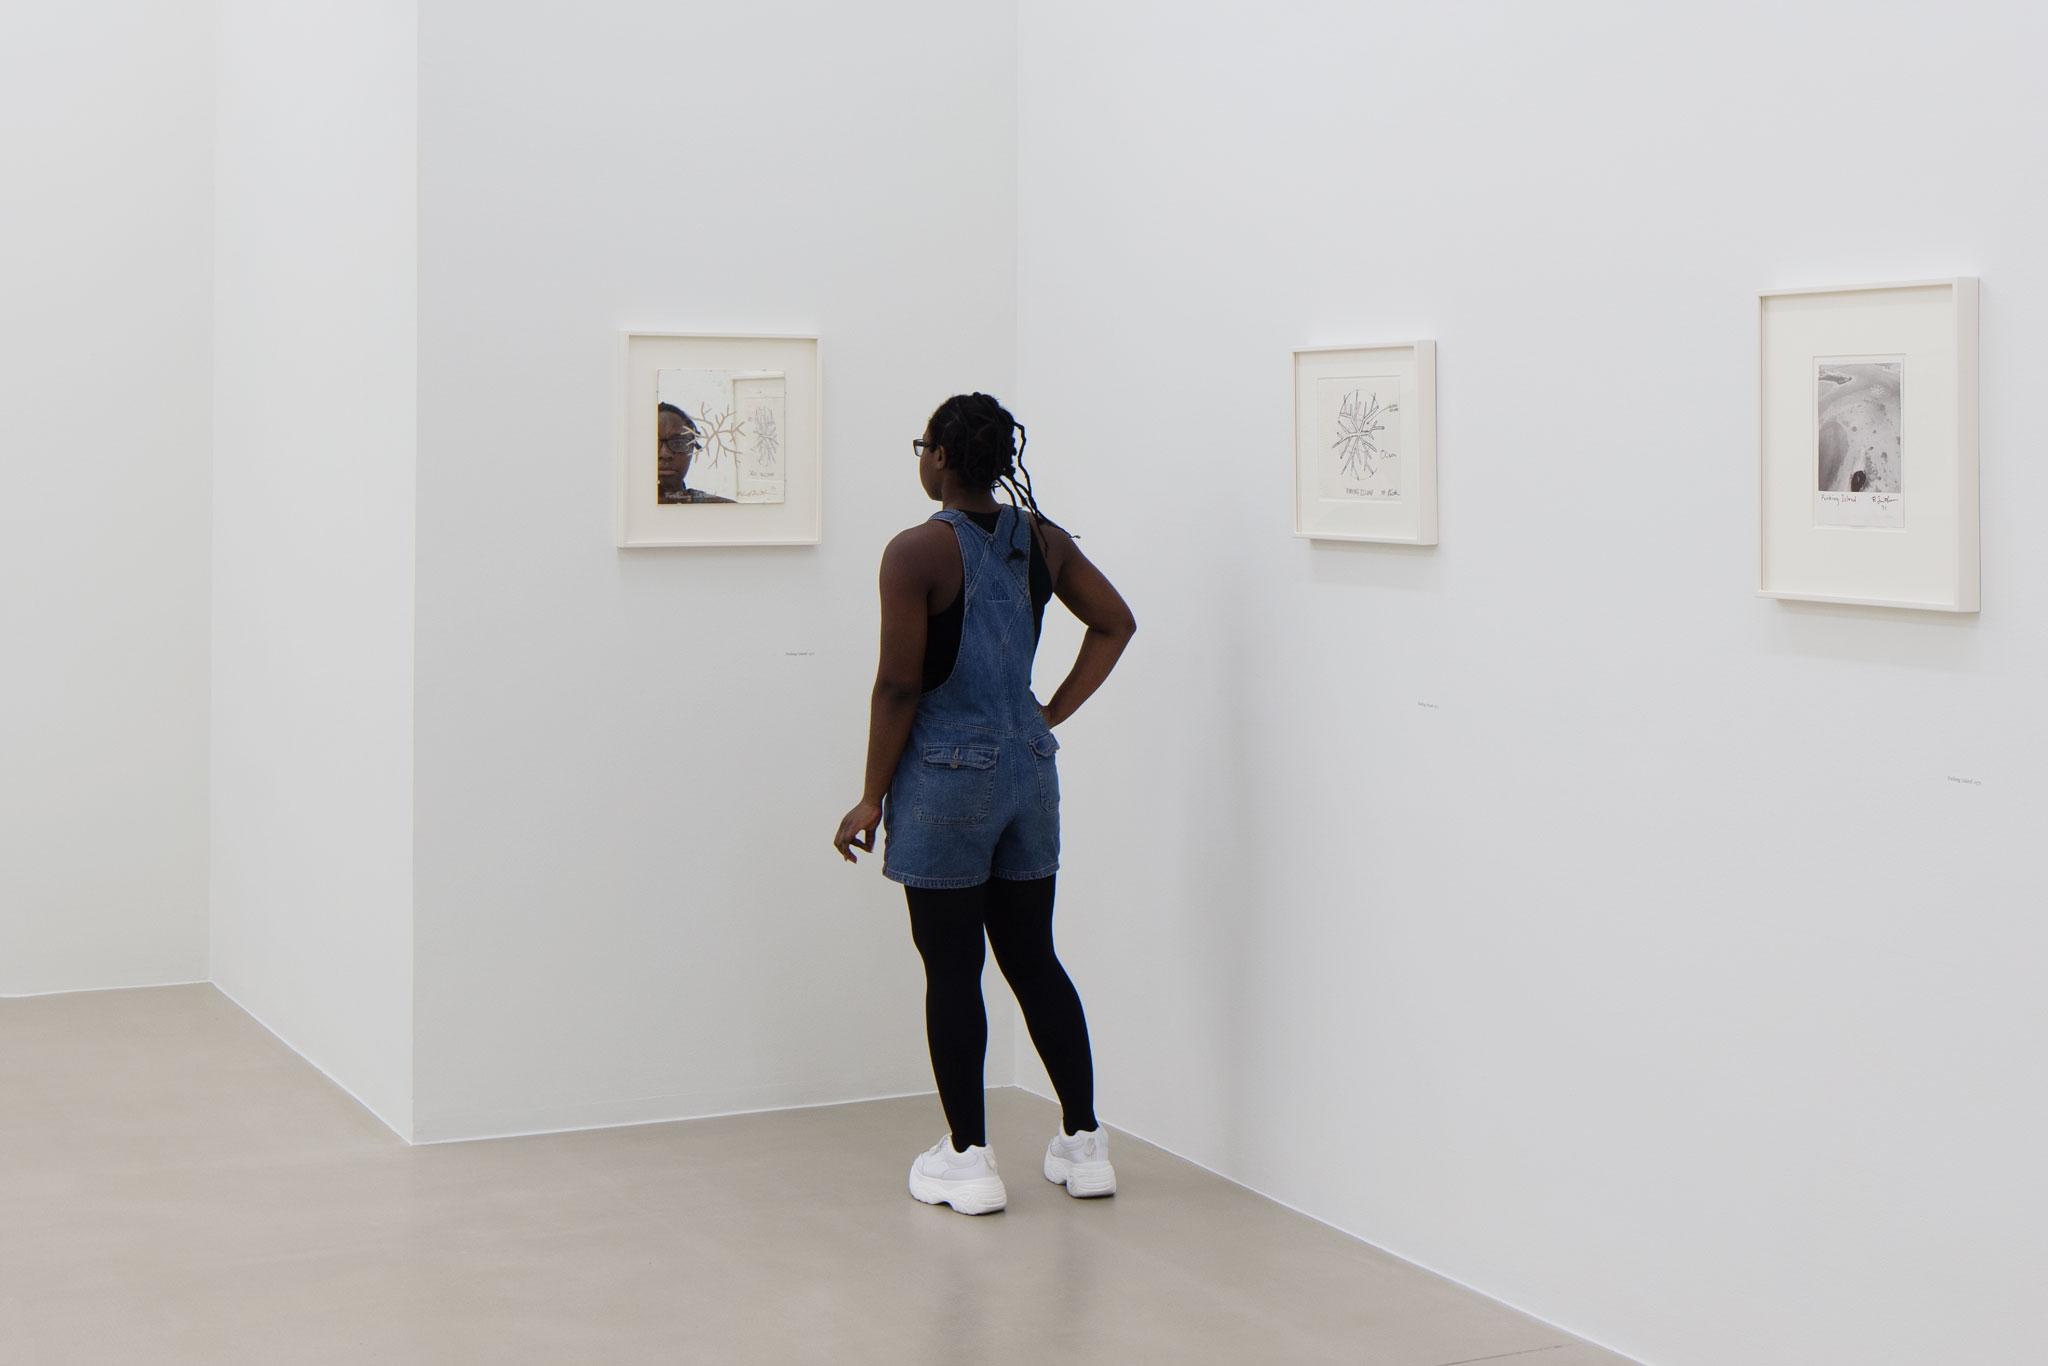 figure stands looking at small mirrored artwork on the white wall of an art gallery